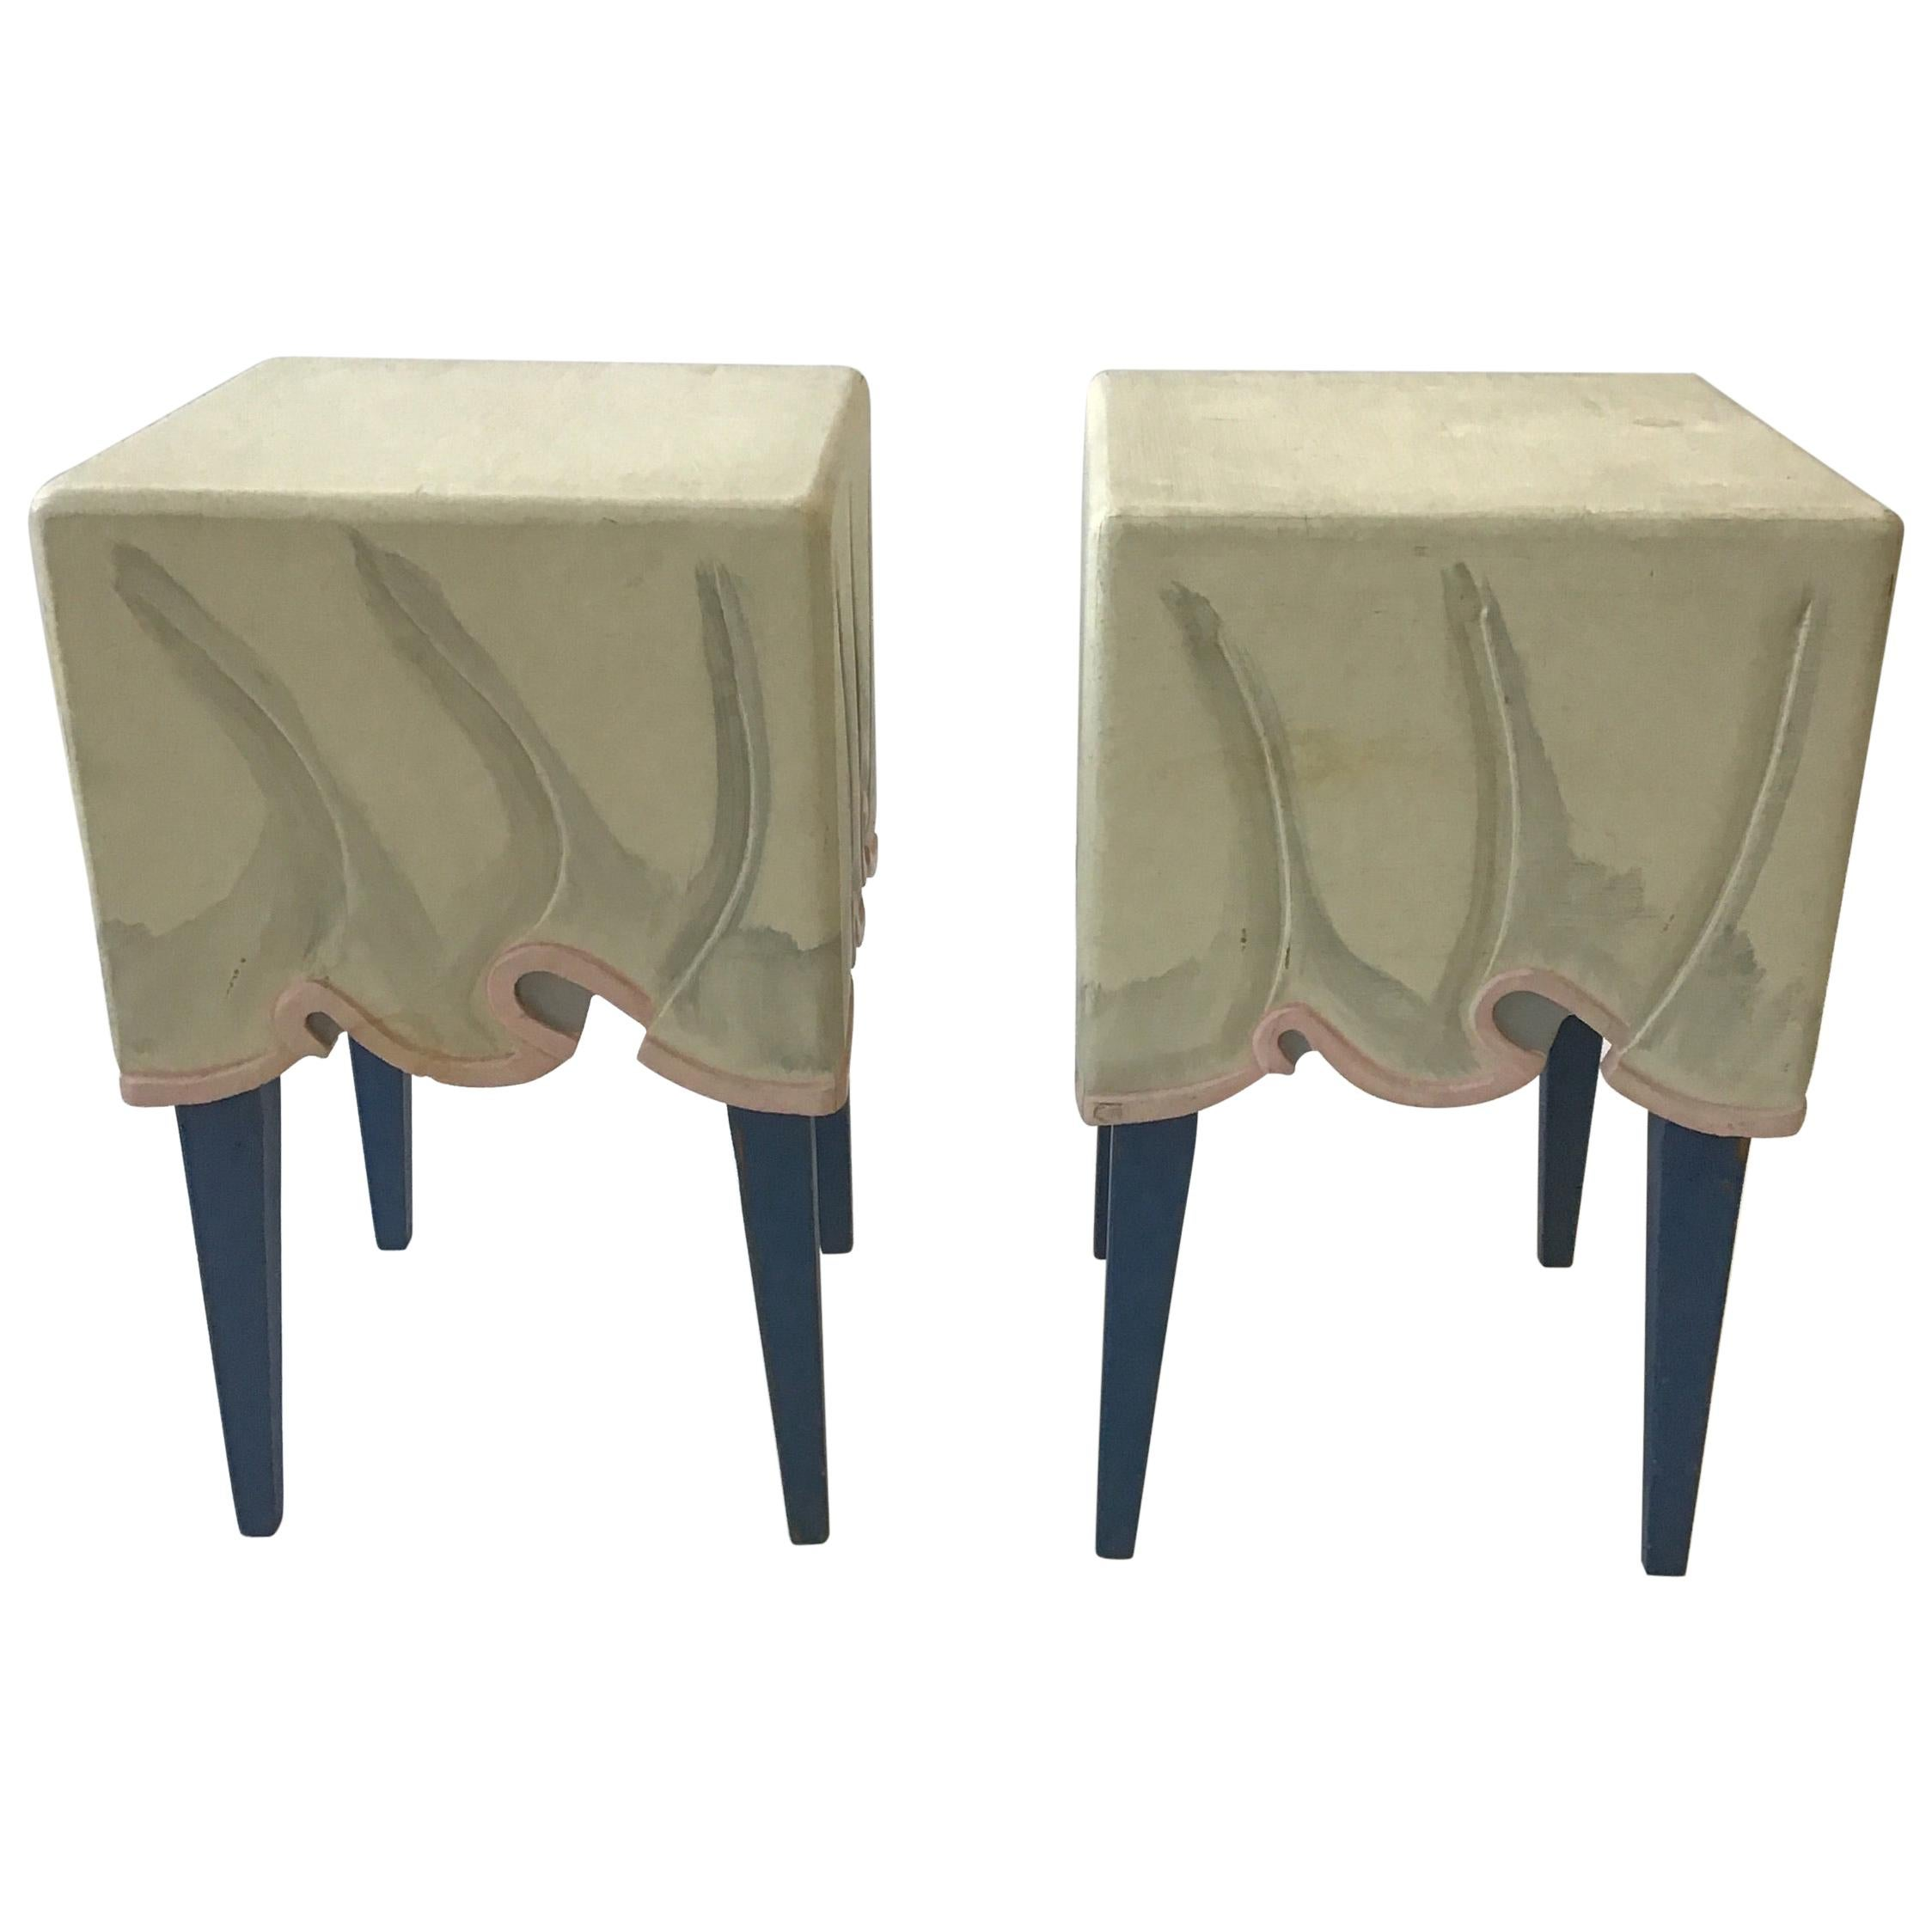 Pair of Hollywood Regency Style, Wood, Faux Draped Side Tables